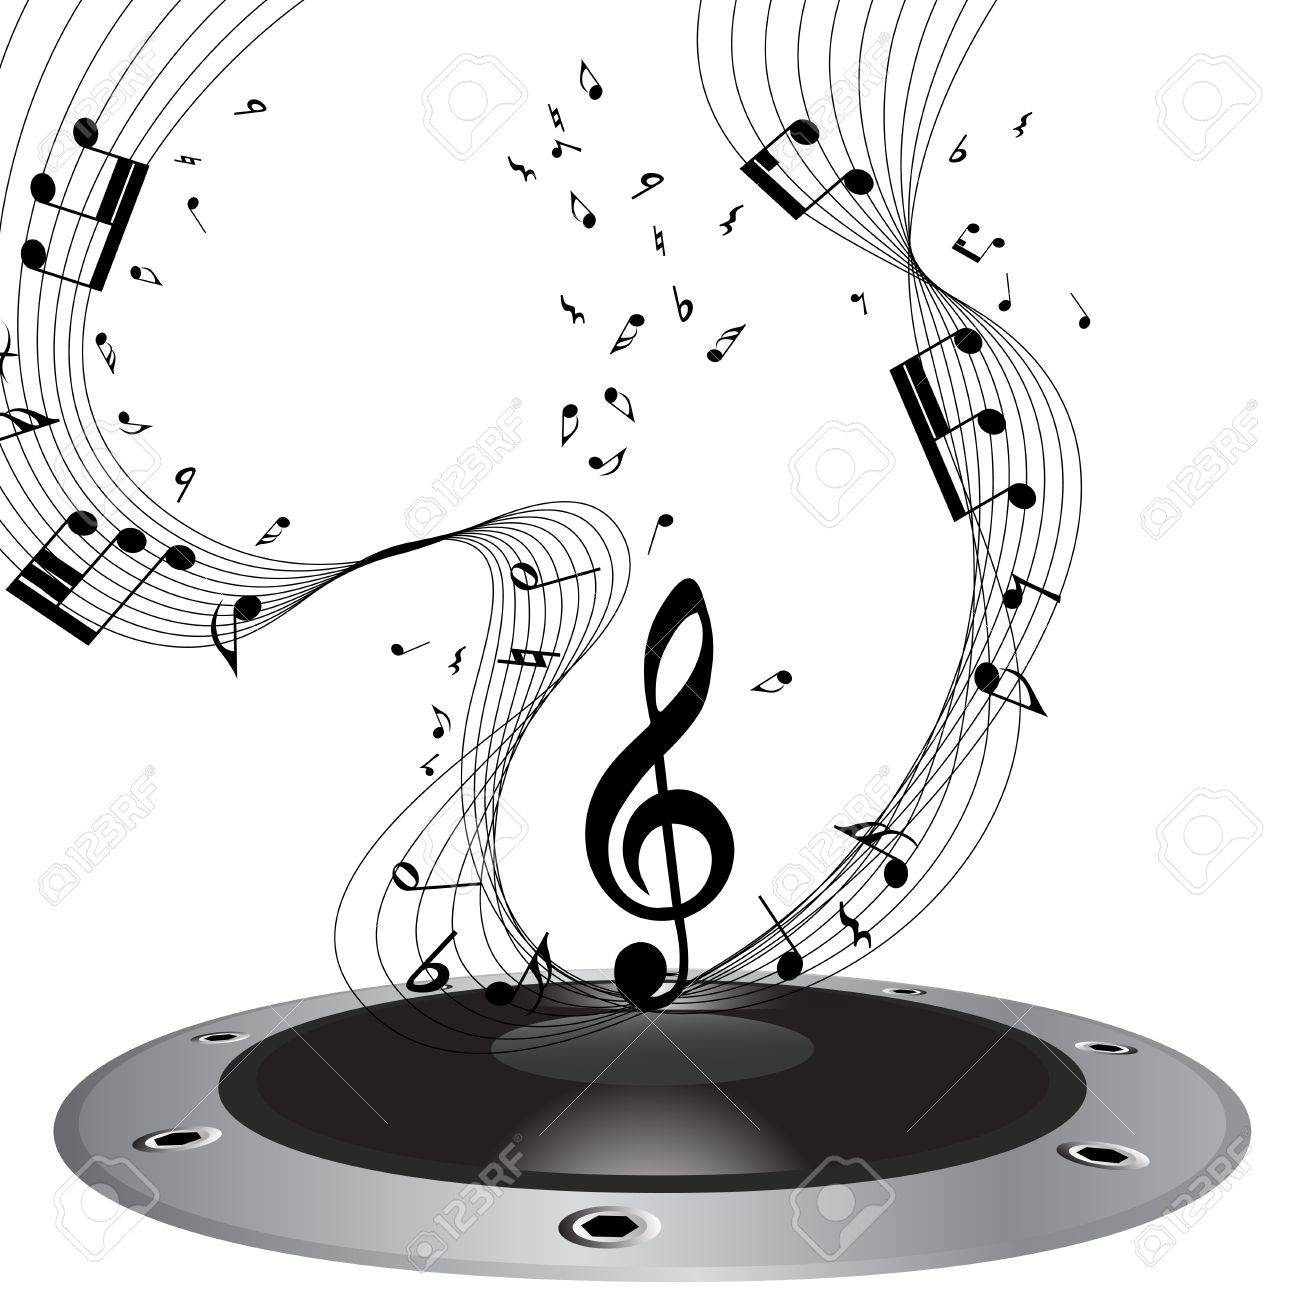 Musical Note Staff Illustration Without Transparency Royalty Free